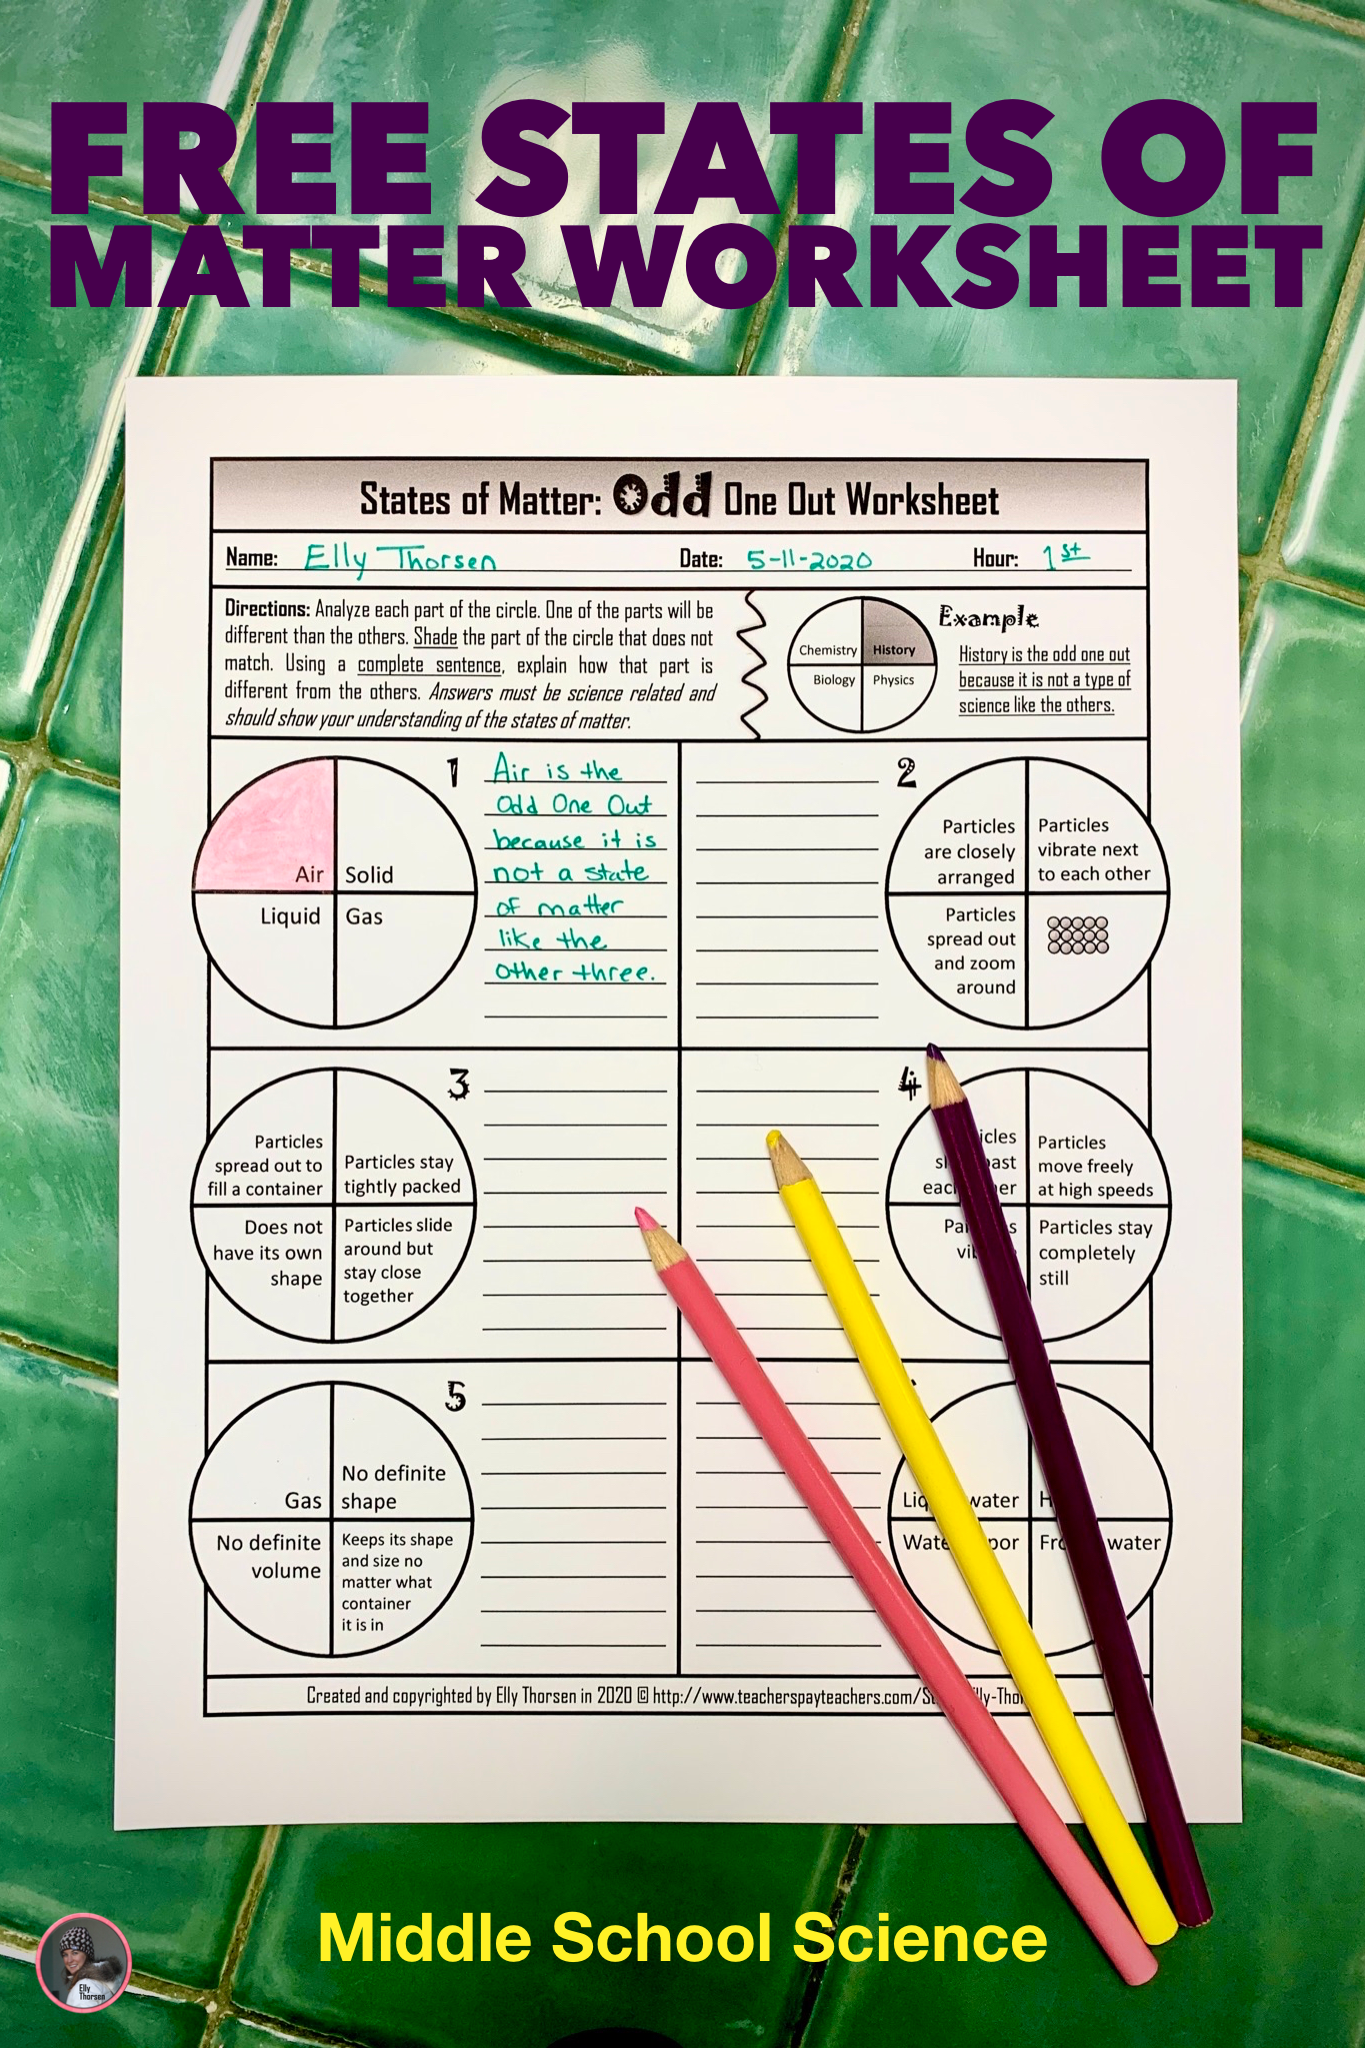 Science States Of Matter Worksheet   Printable Worksheets and Activities  for Teachers [ 2048 x 1365 Pixel ]